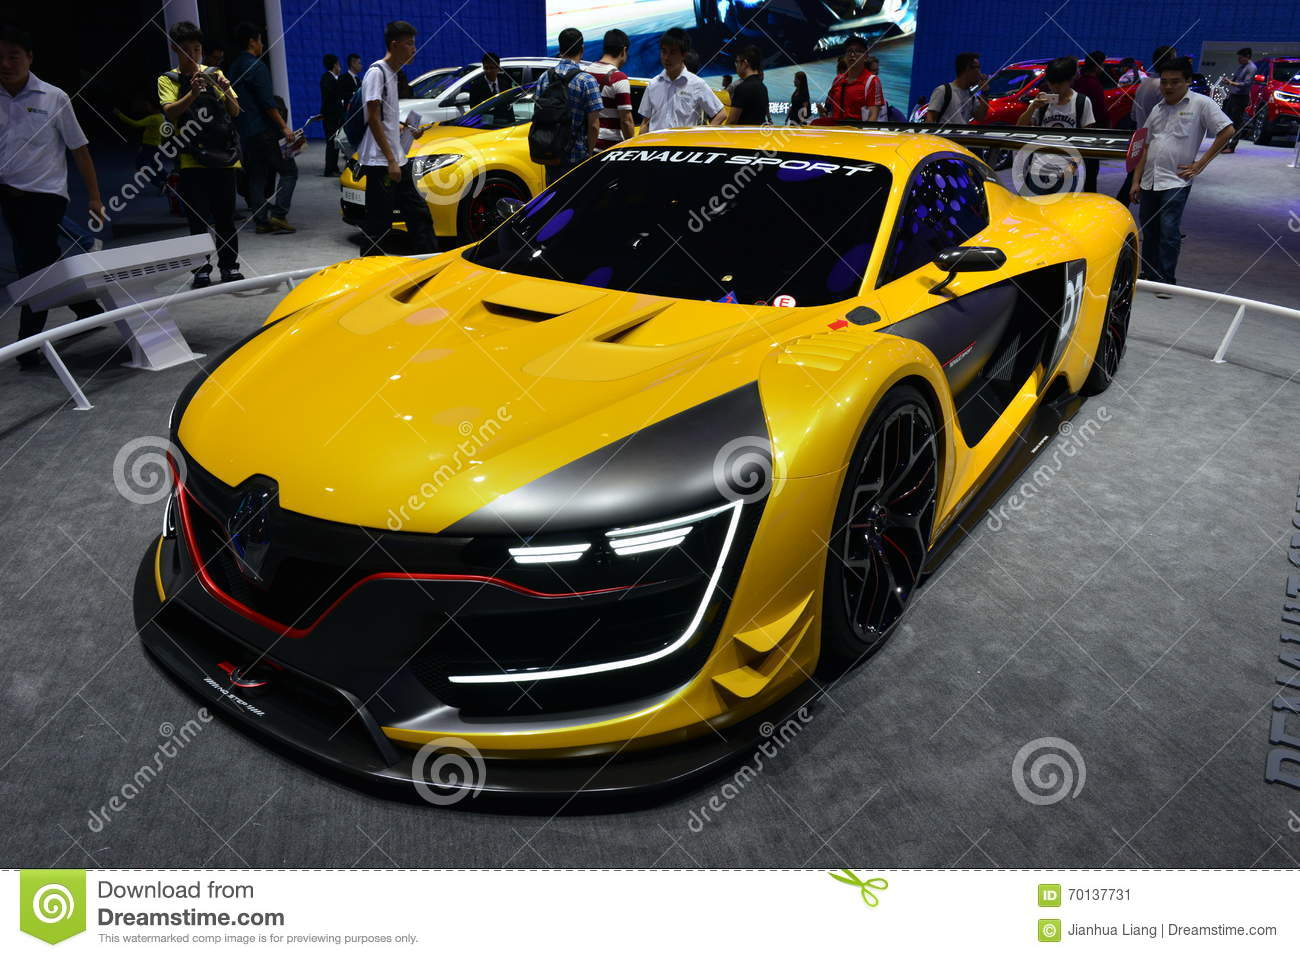 Renault r s voiture de course 01 photo ditorial image du salon type 70137731 - Image voiture de course ...